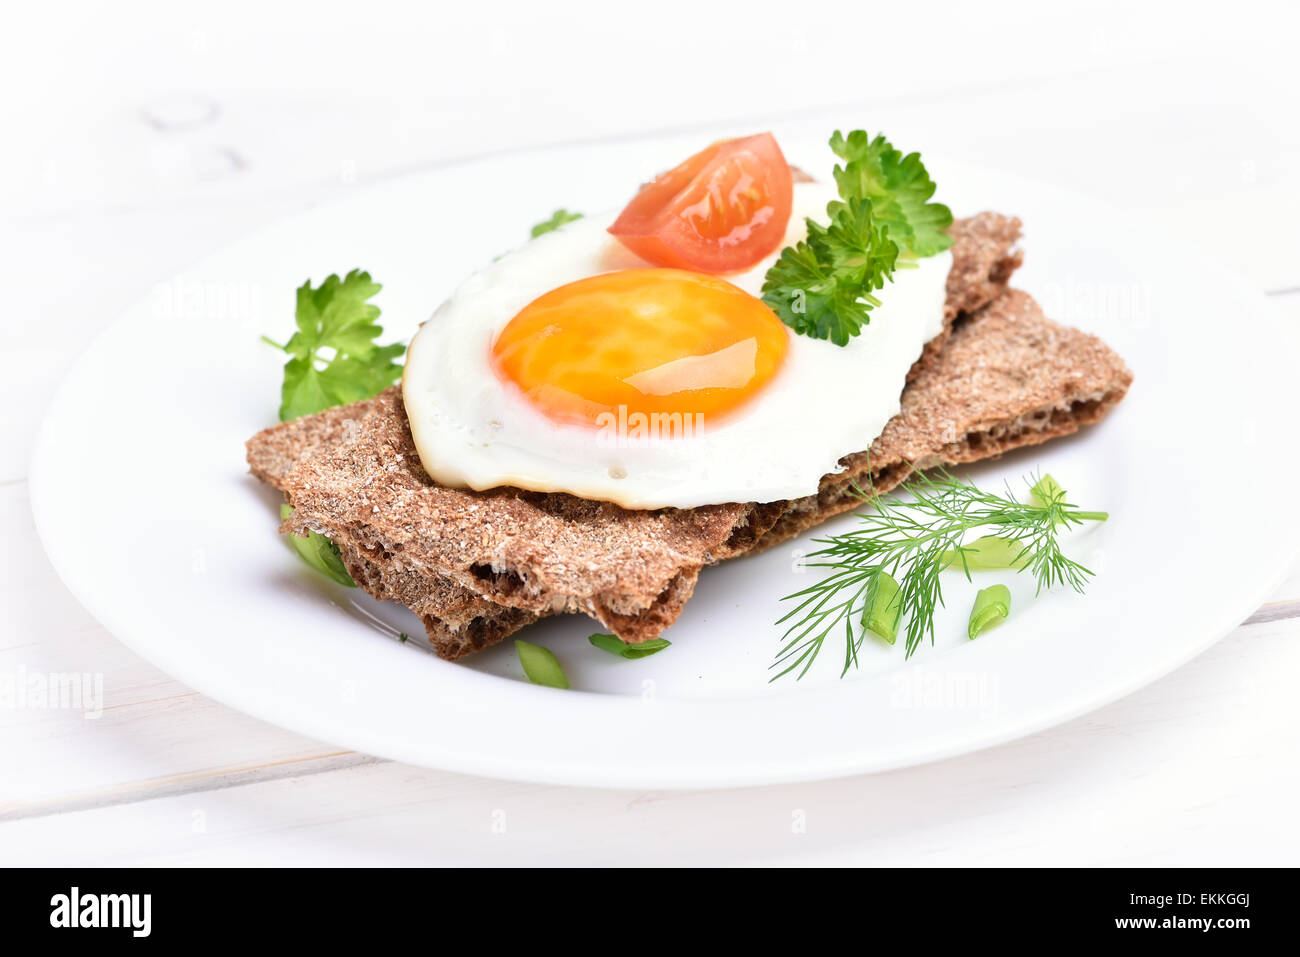 Fried egg on crispbread, close up view - Stock Image